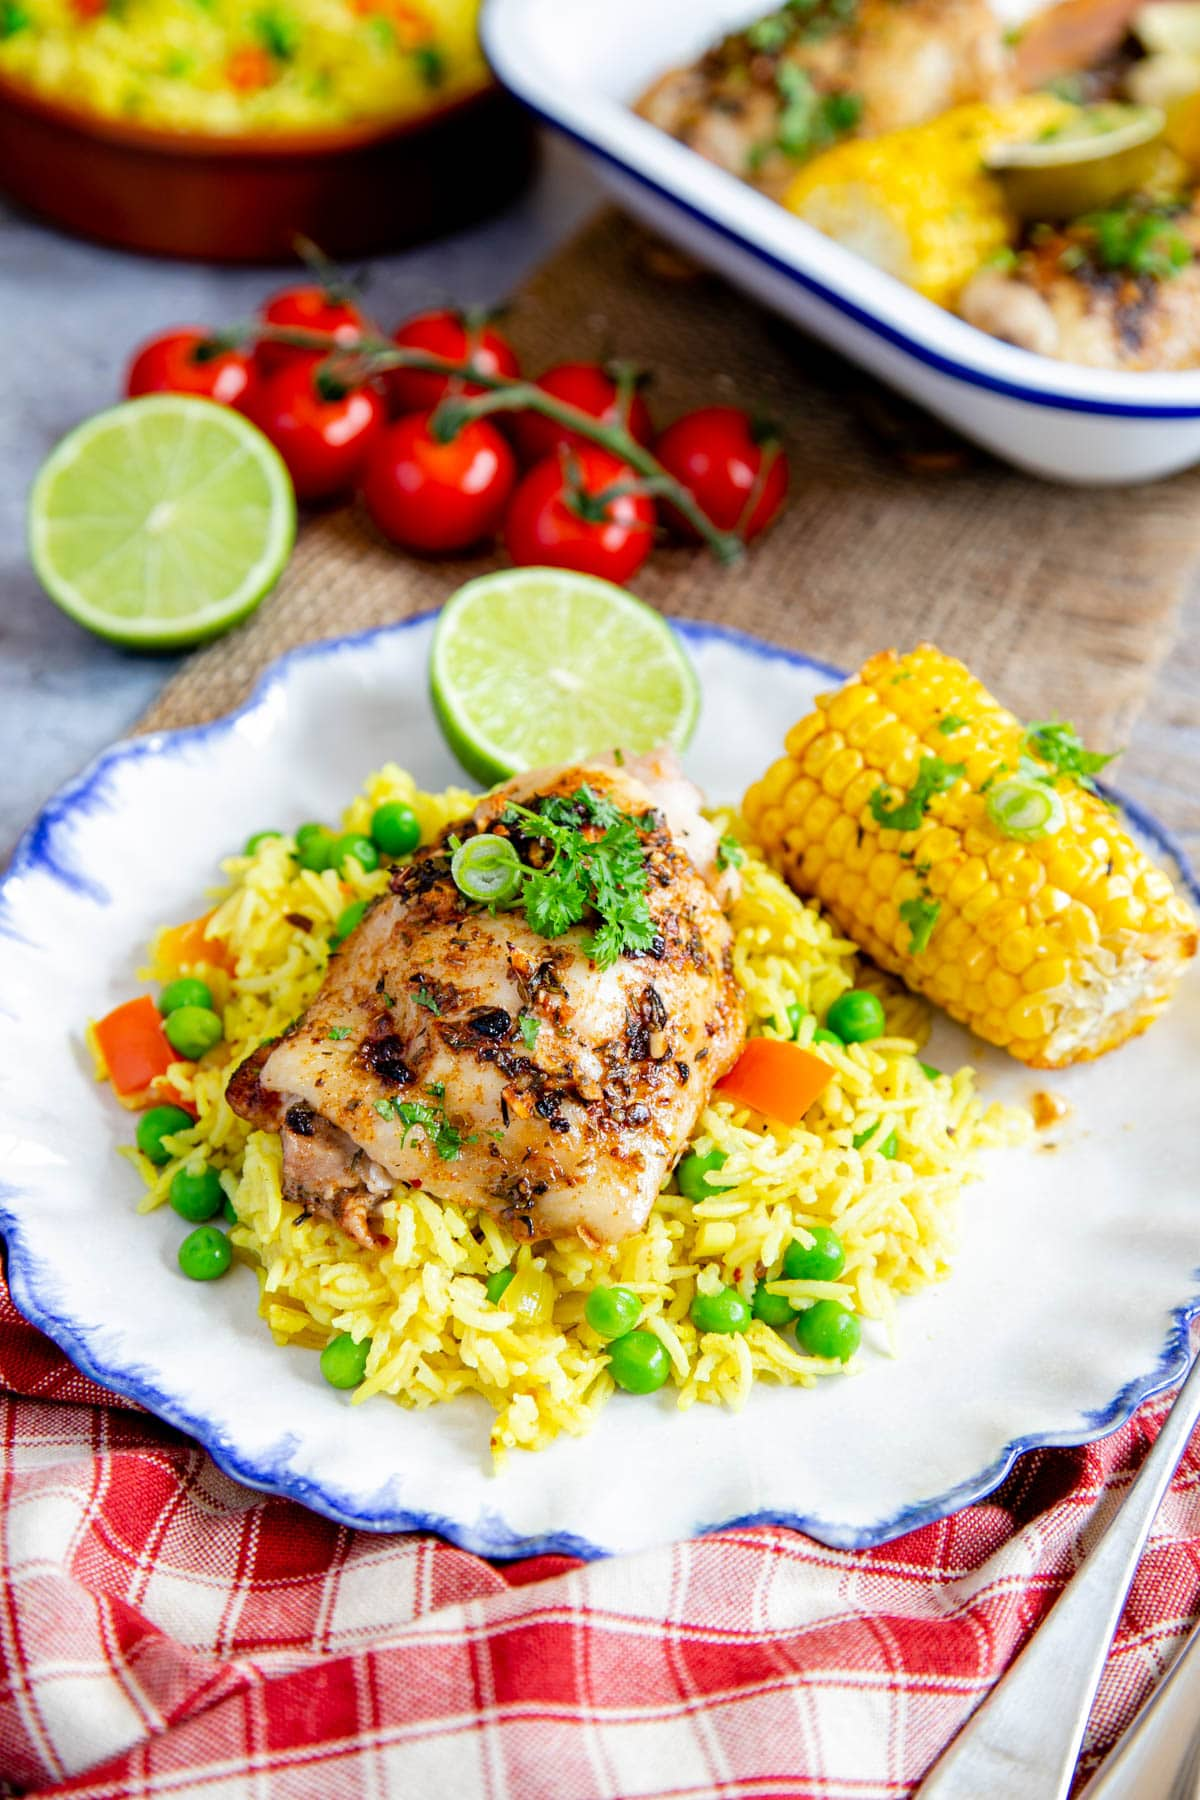 A plate of delicious peri peri chicken served on fragrant yellow rice. A half cob of corn sits on the blue rimmed plate. In the background are dishes holding more chicken and rice.